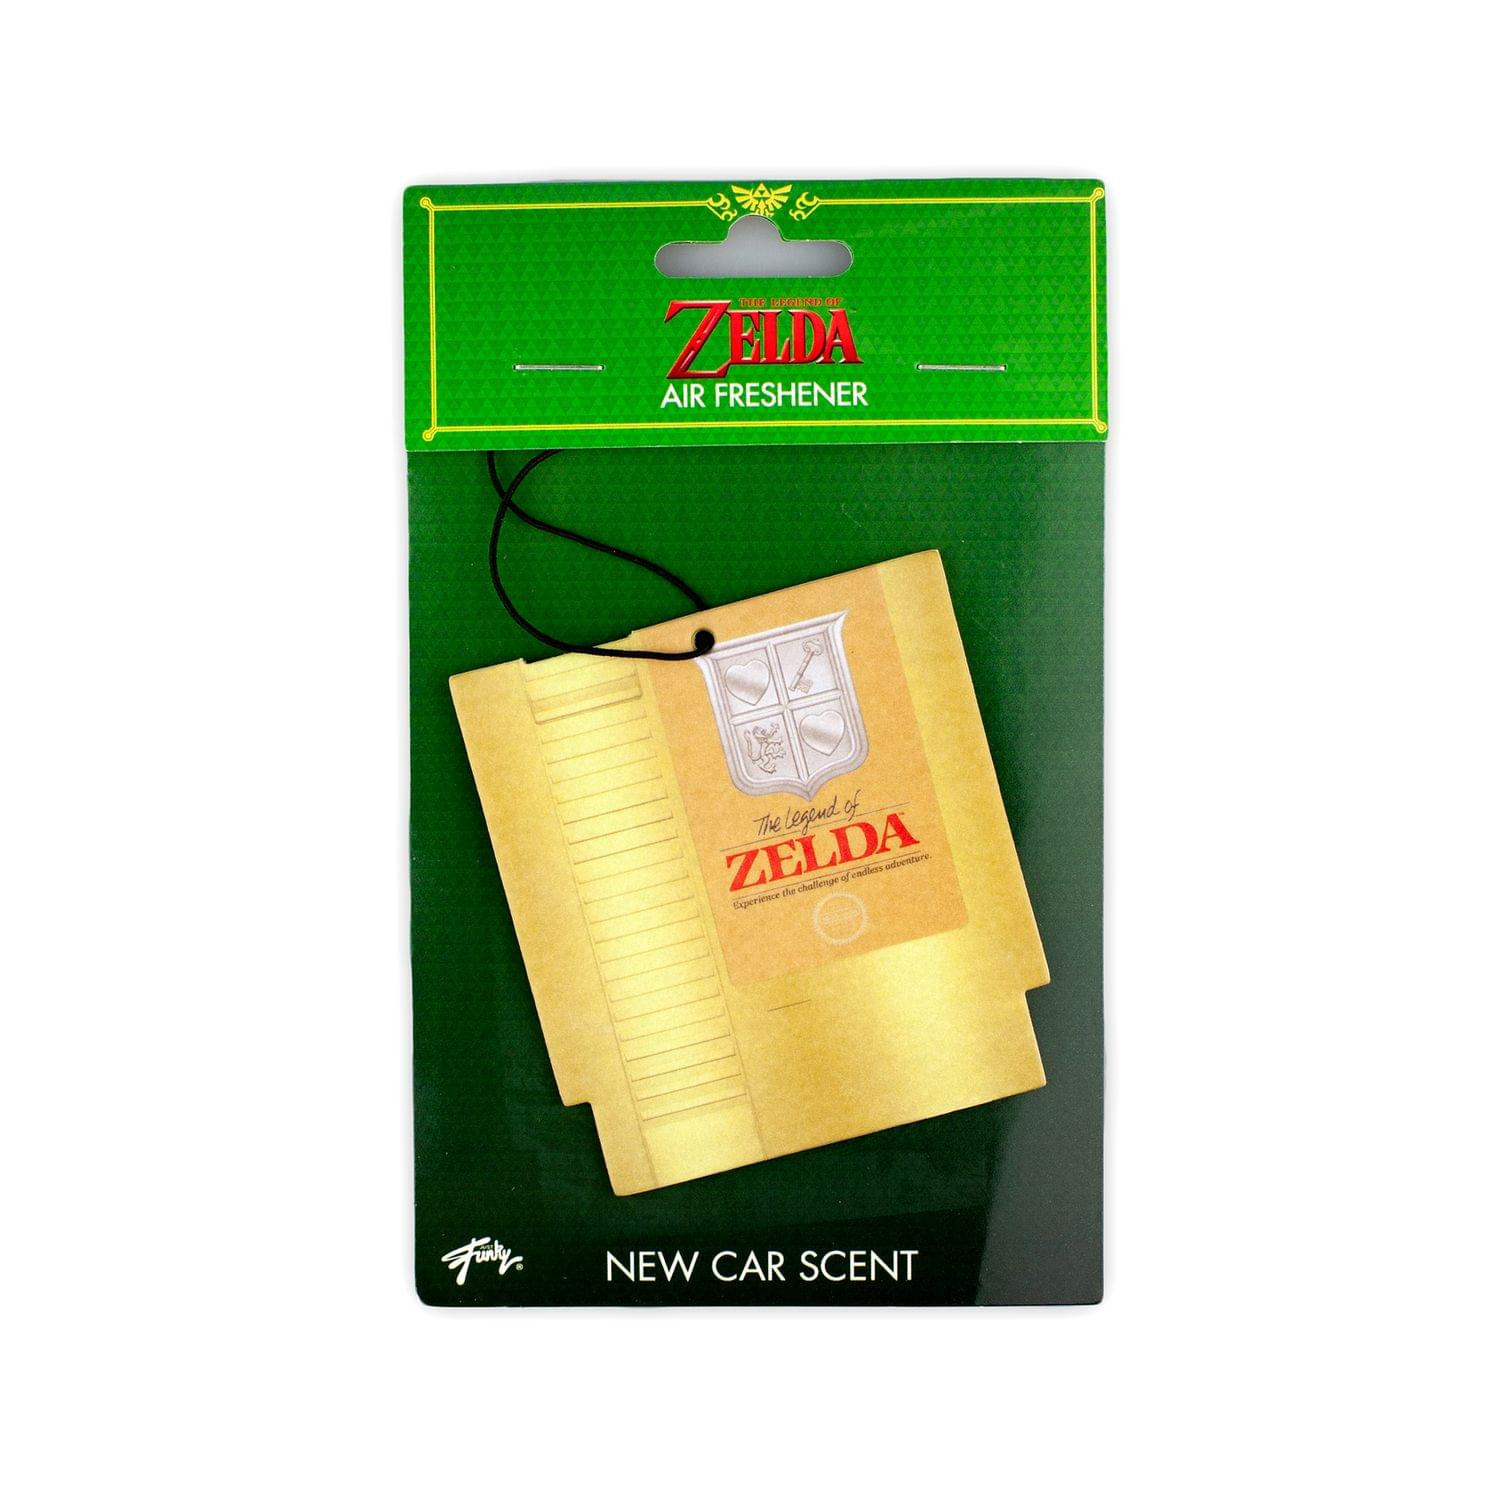 The Legend Of Zelda Official NES Cartridge Air Freshener | New Car Scent